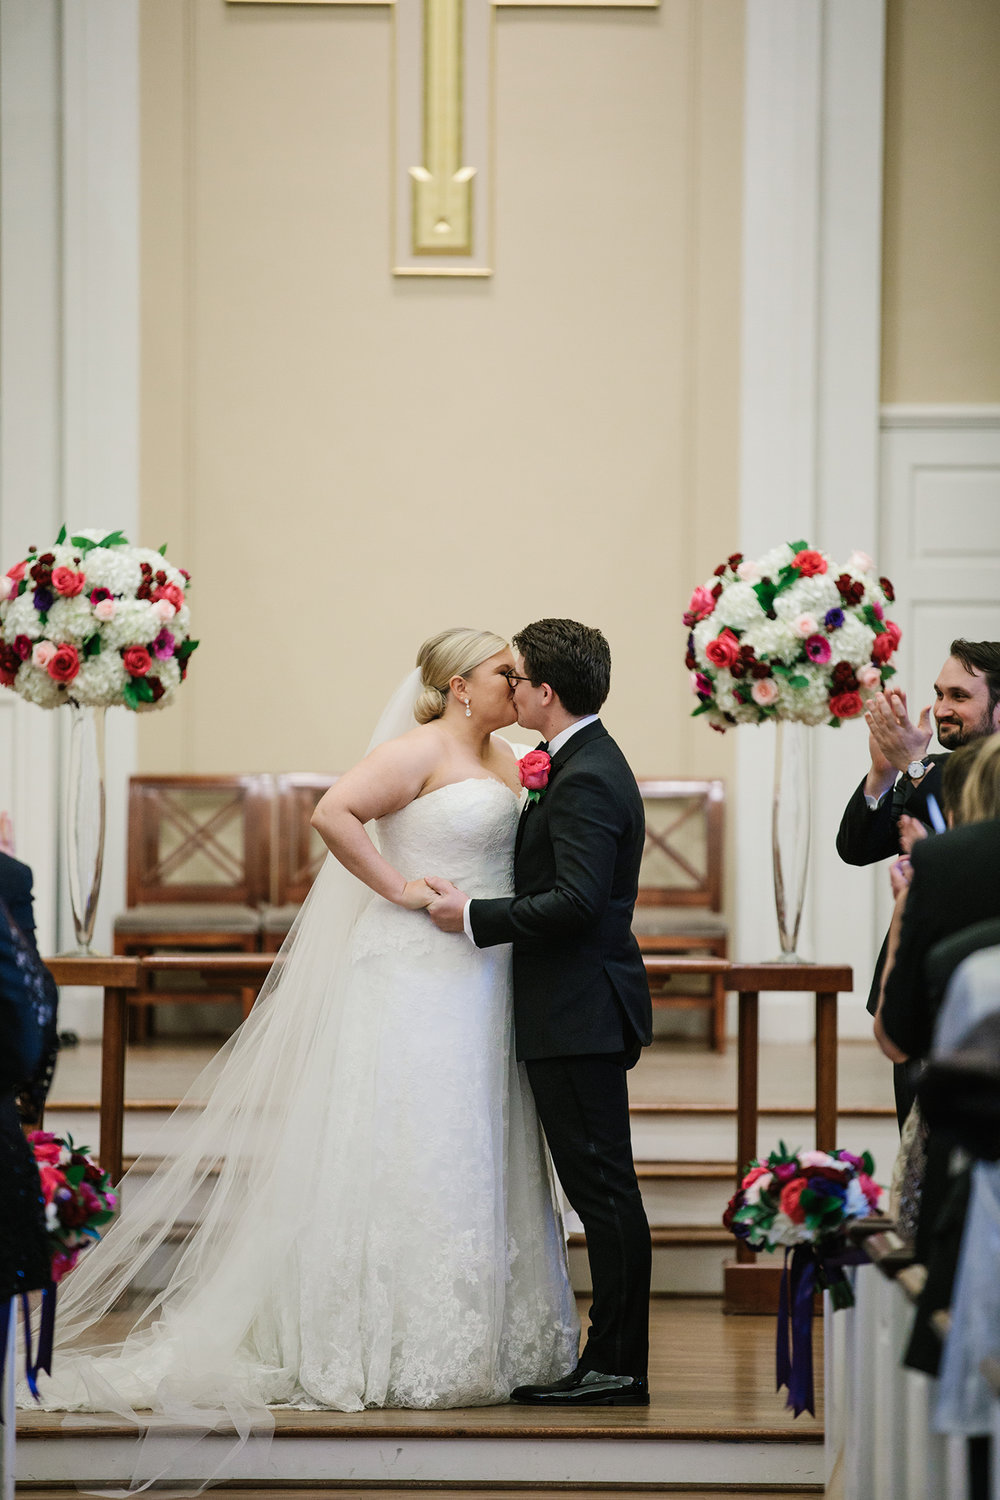 Dallas Weddings Planner - Allday Events - Katie + Matthew at The Adolphus Hotel - 401.jpg